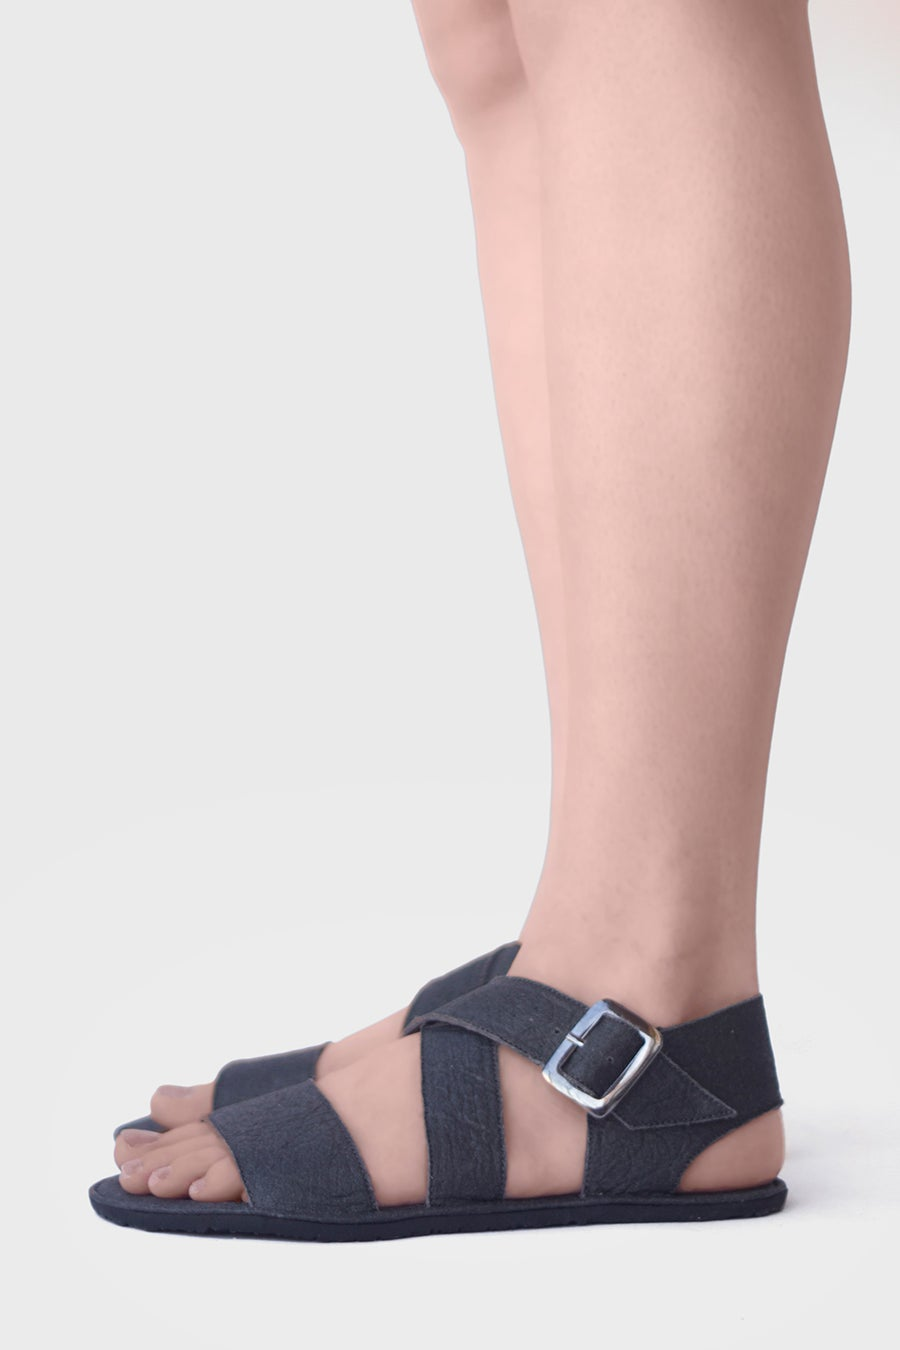 Image of Sandal X in Charcoal Piñatex®